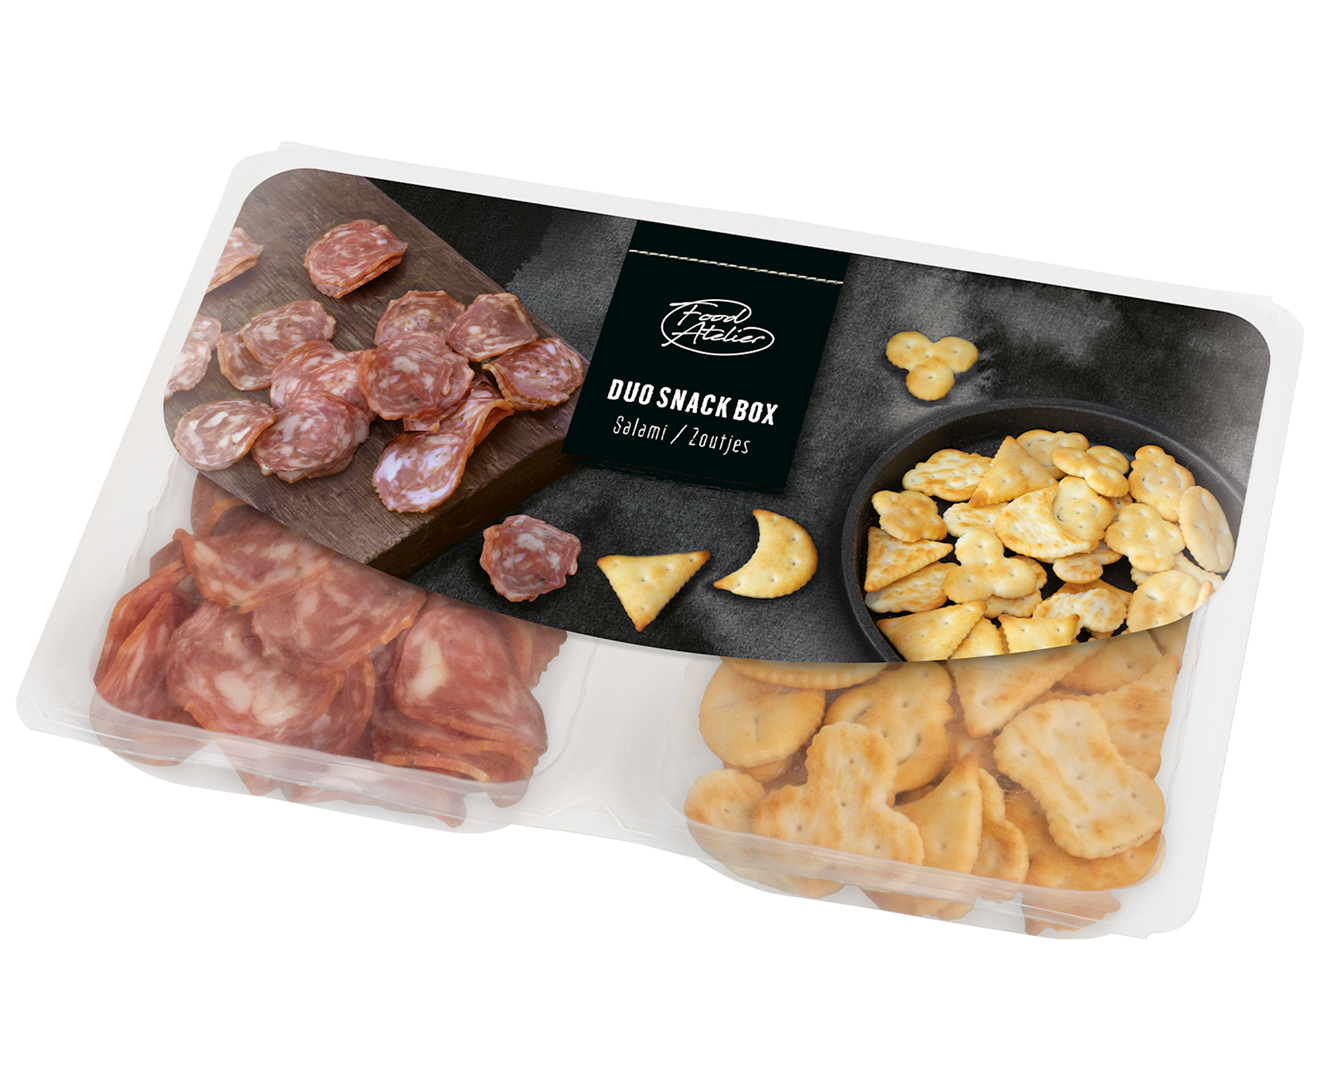 Productafbeelding Duo snack box Food atelier 85g tray